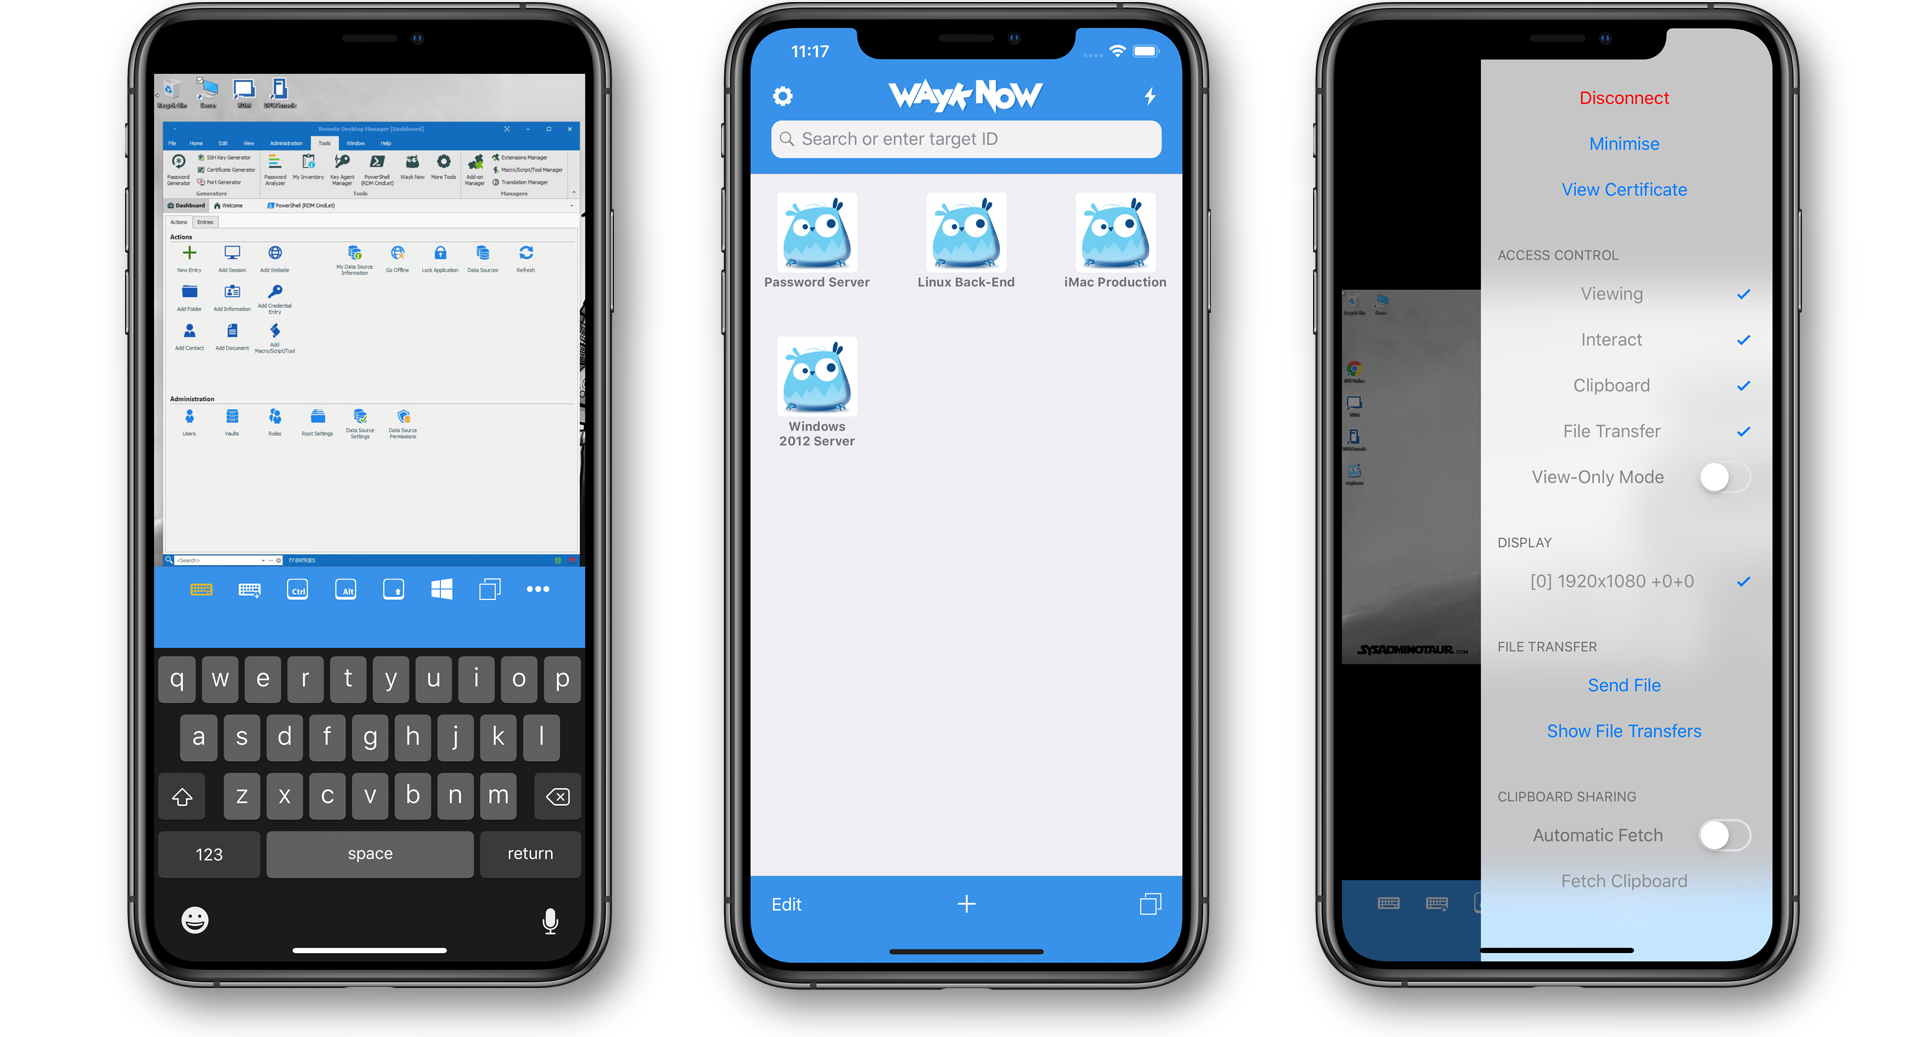 Remotely Access Multiple Devices from Your iPhone or iPad - Wayk Now